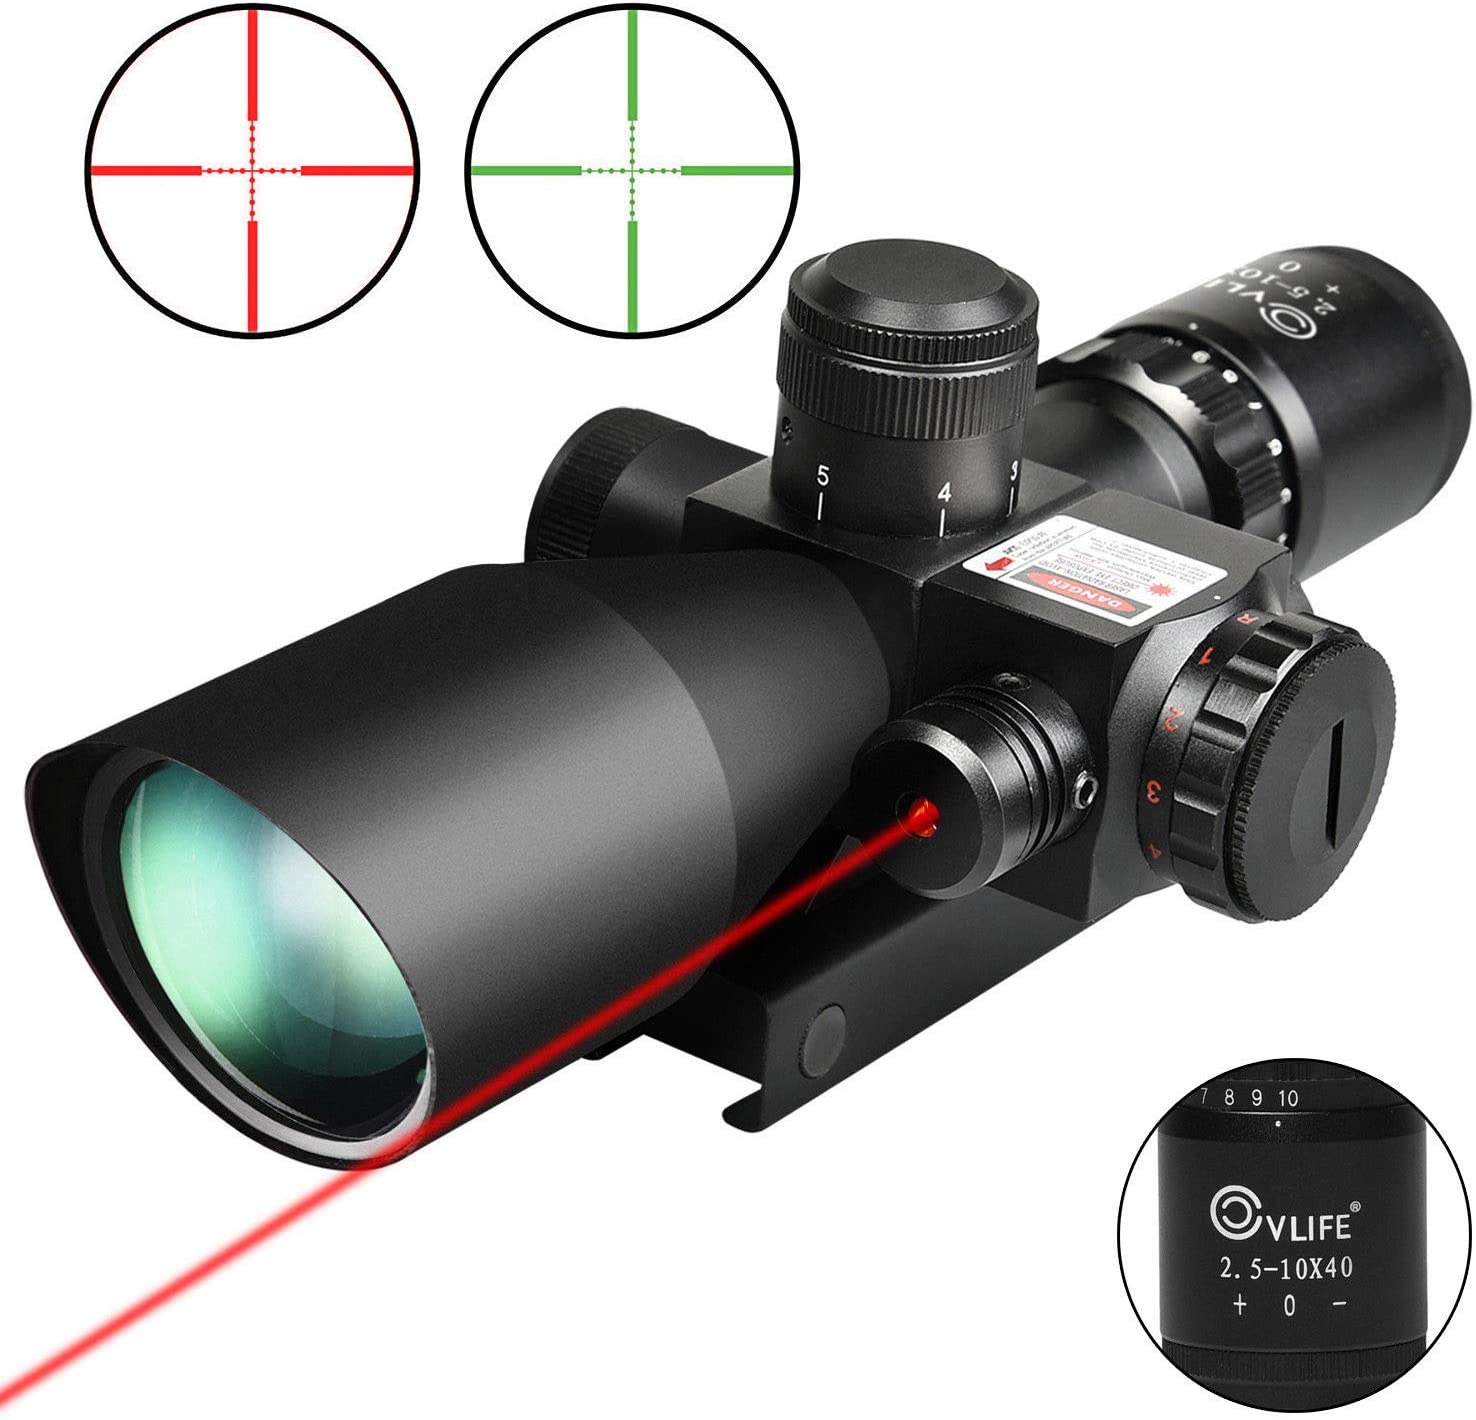 Best Hunting Scope: CVLIFE 2.5-10x40e Red & Green Illuminated Scope with 20mm Mount